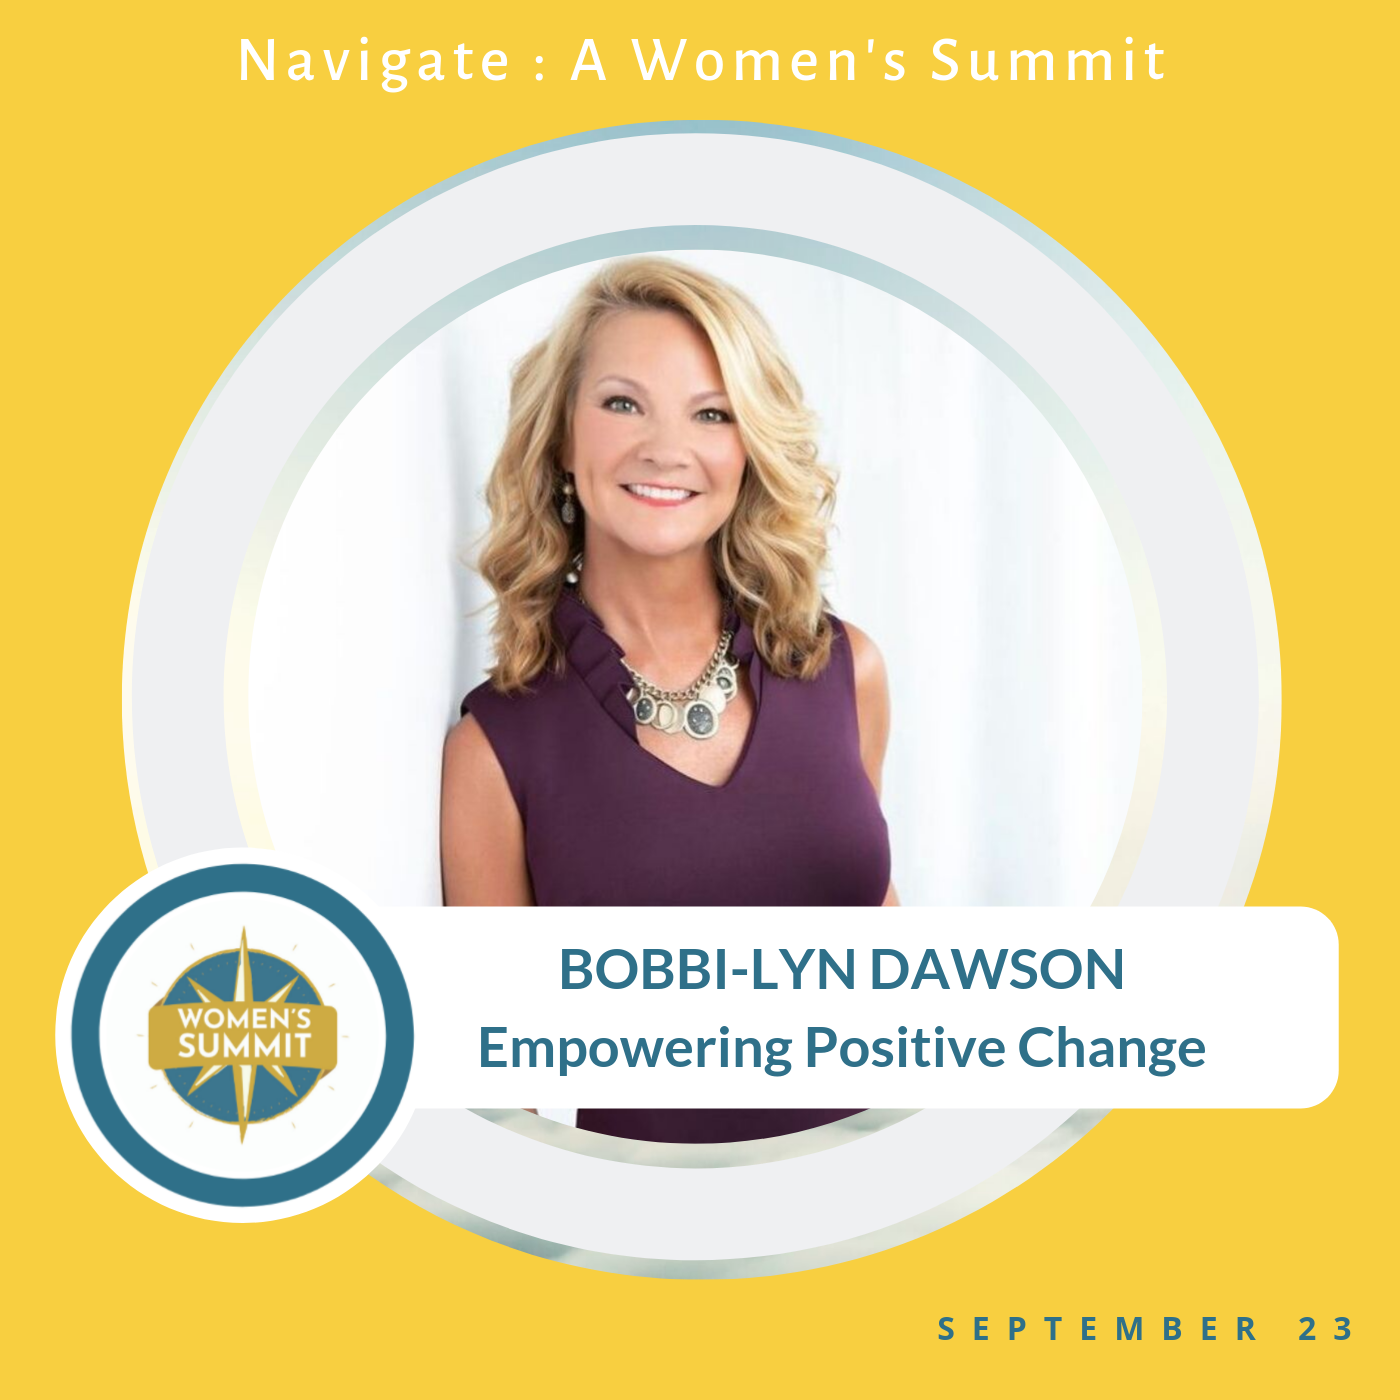 Bobbi-lyn empowering positive change women event